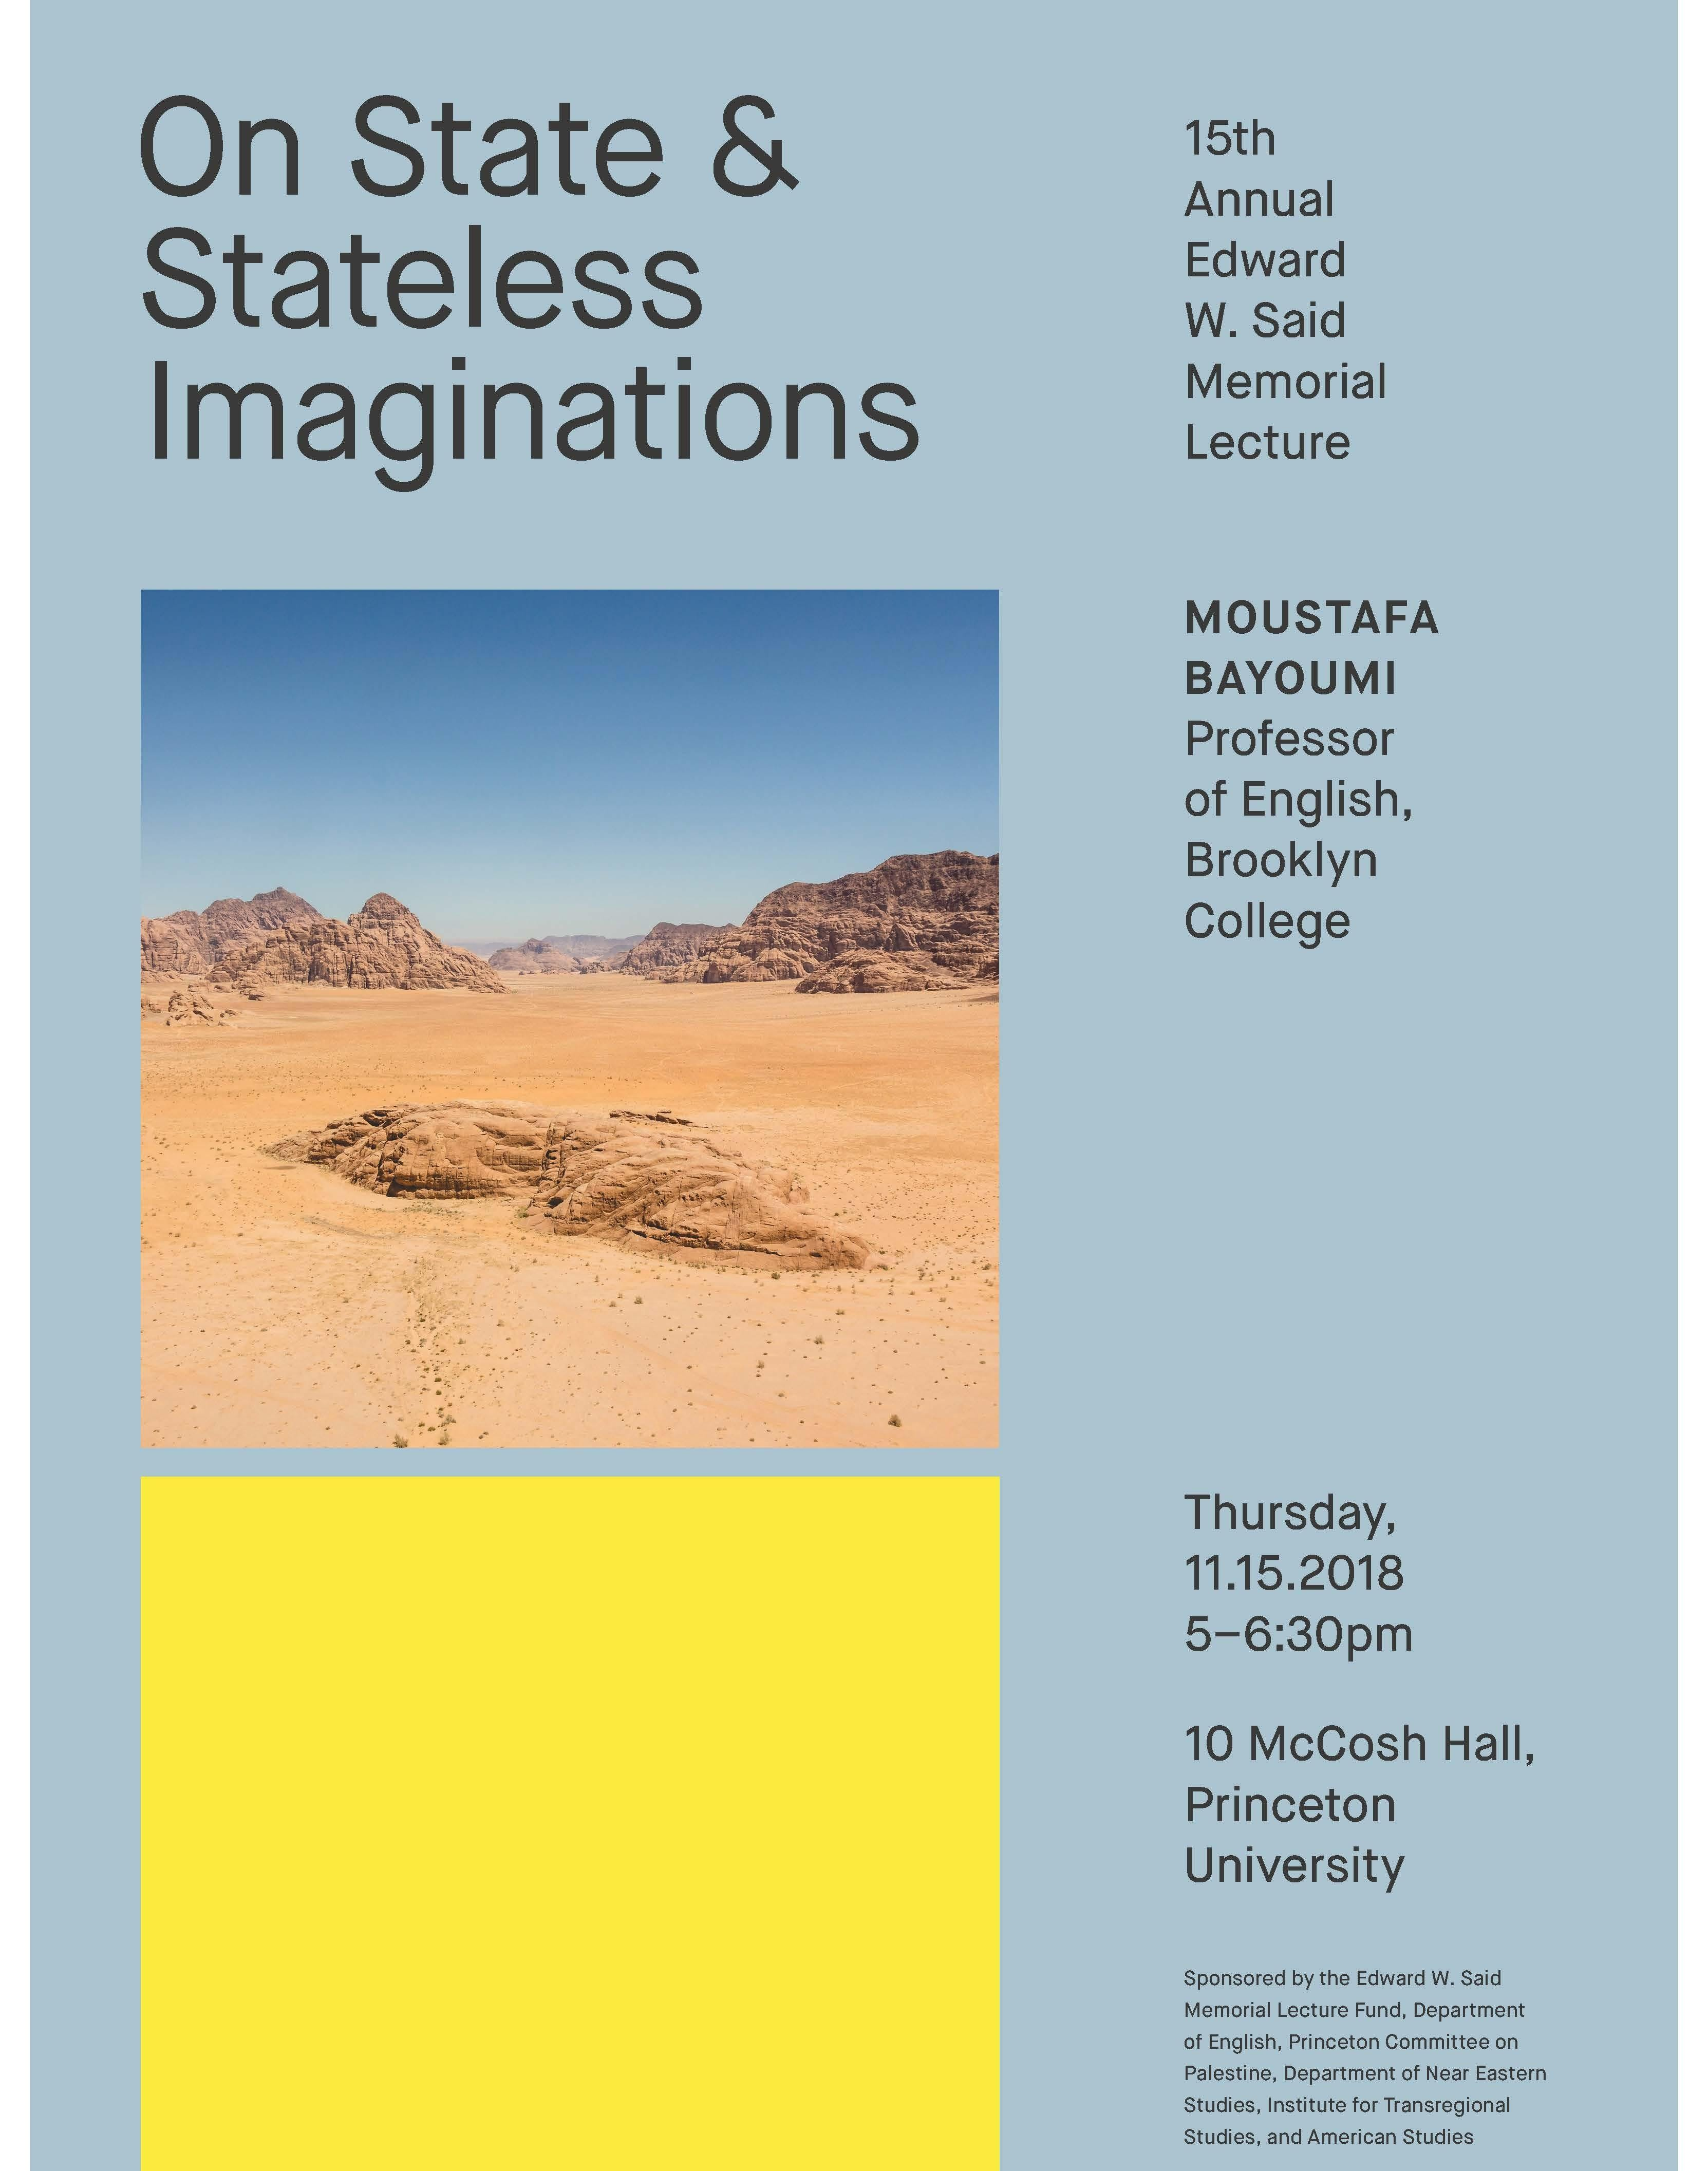 Edward W. Said Memorial Lecture, On State and